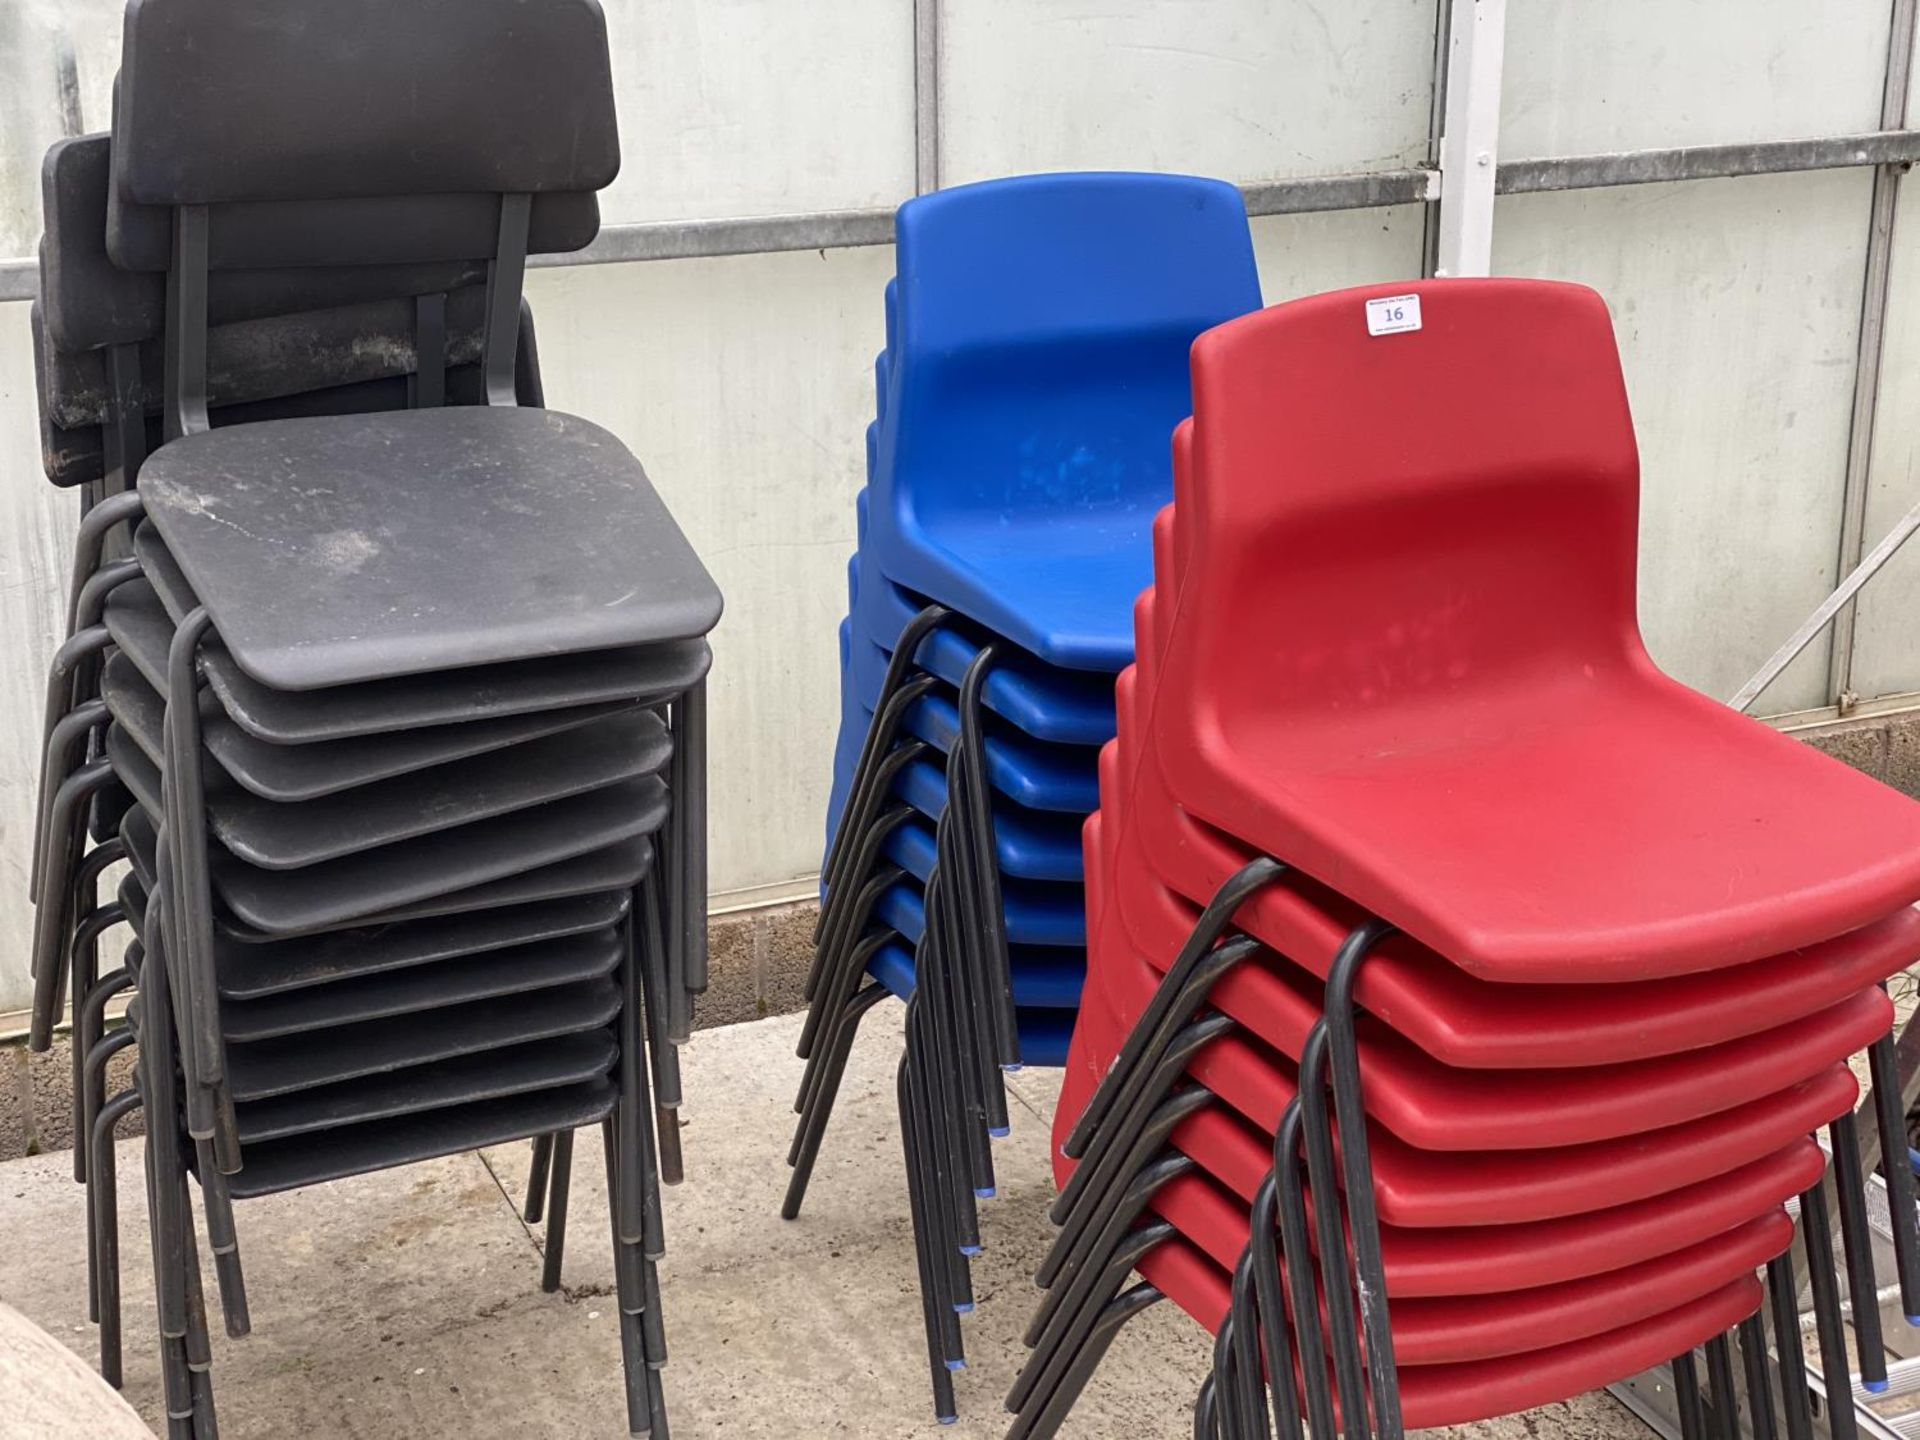 25 INFANT STACKING CHAIRS - N0 VAT